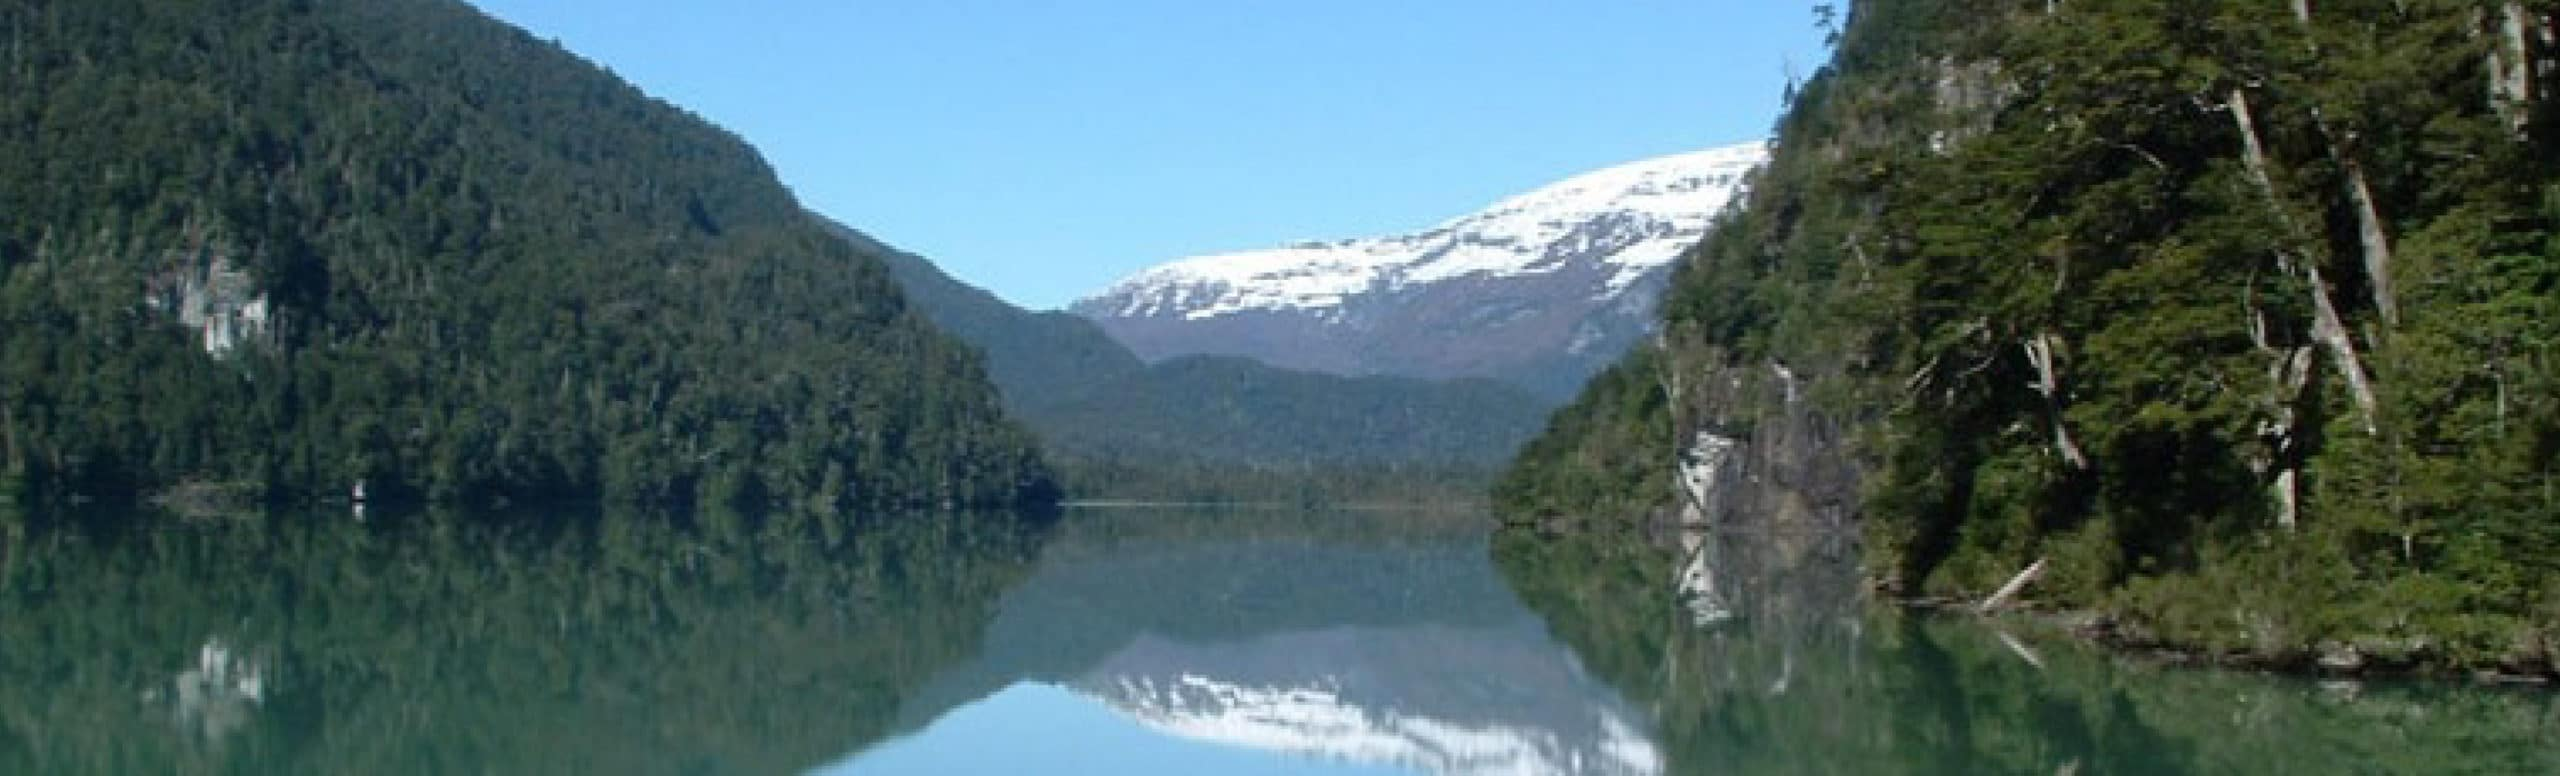 Lakes Crossing from Puerto Varas to Bariloche